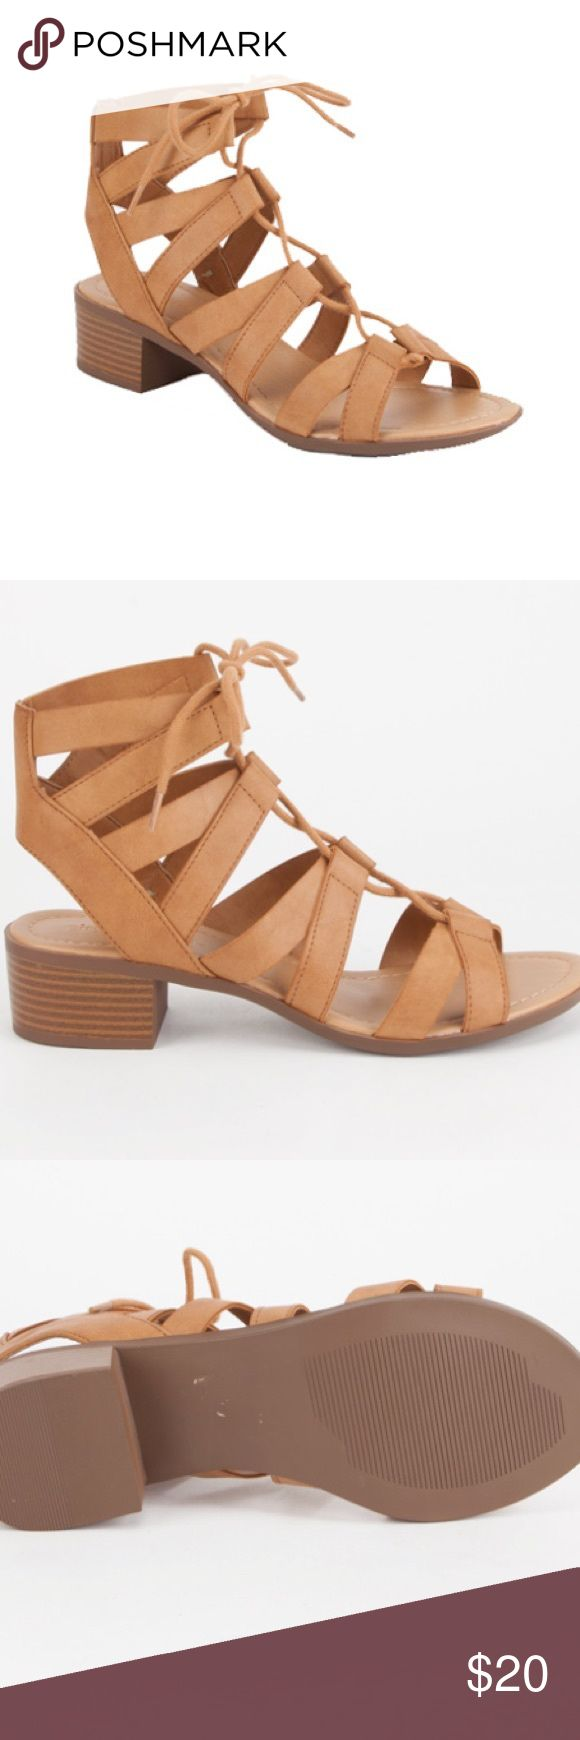 "CITY CLASSIFIED - Strappy Lace Up Sandals - Heels Brand new - strappy lace up heeled sandals, faux leather straps, lace up self-tie at ankle, faux leather foot bed, stacked heel, heel height: approx. 1.5"" ❌TRADES❌ Tilly's Shoes Heels"